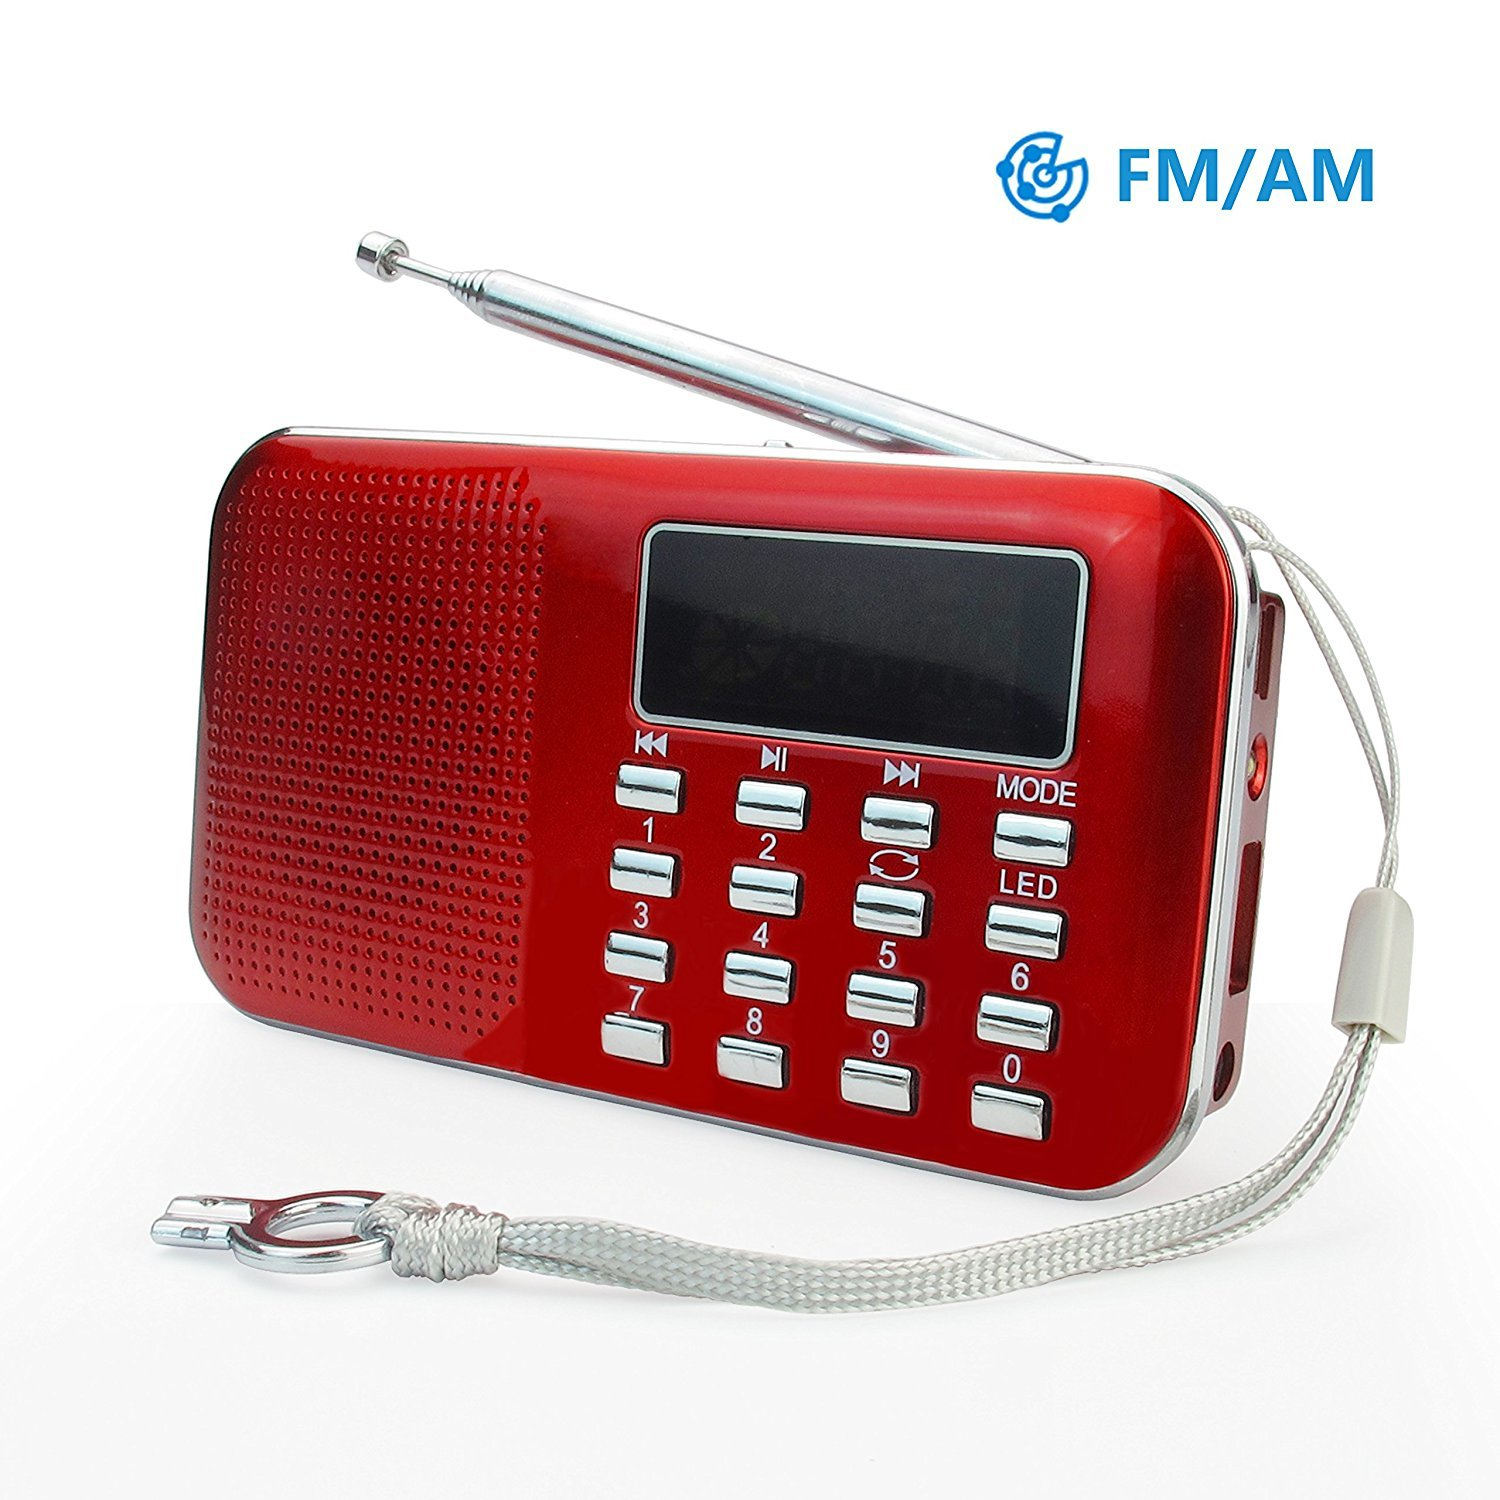 PRUNUS Mini Portable Ultrathin AM / FM MP3 Radio with Emergency flashlight function. Rechargeable and Replaceable battery. Long antenna. Stores stations automatically. Supports the following: Flash drive / Micro SD card / TF card (8GB, 16GB, 32GB, 64GB) to